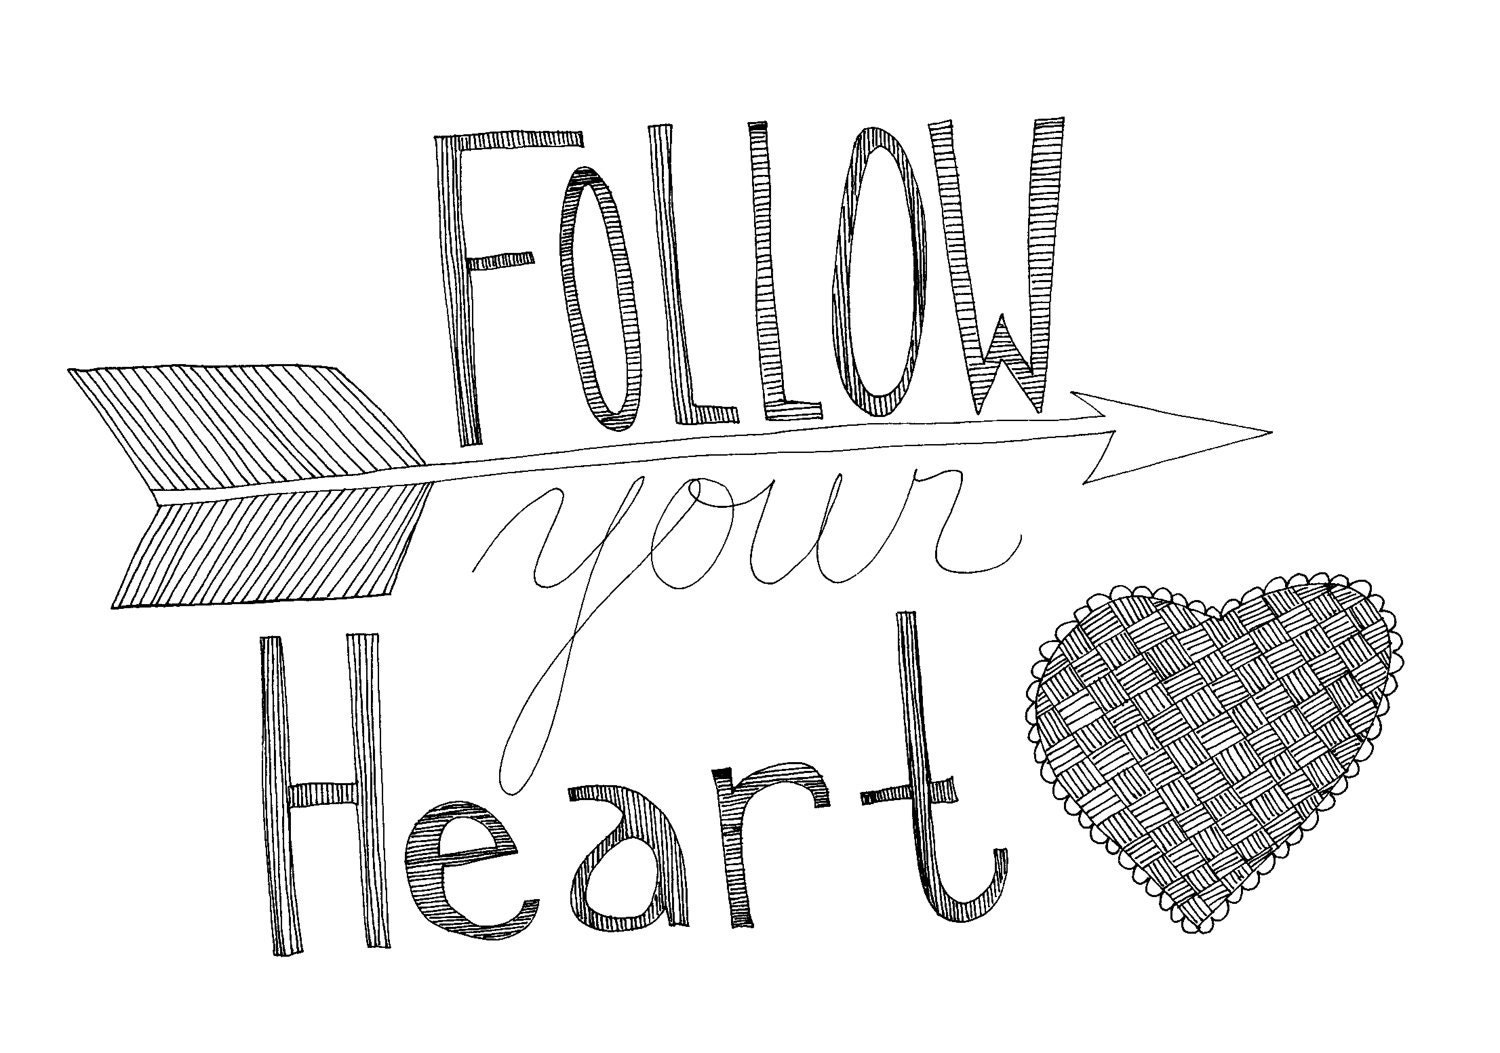 Inspirational Quotes With Drawings: Follow Your Heart 8x10 Typography Inspirational Quote Print